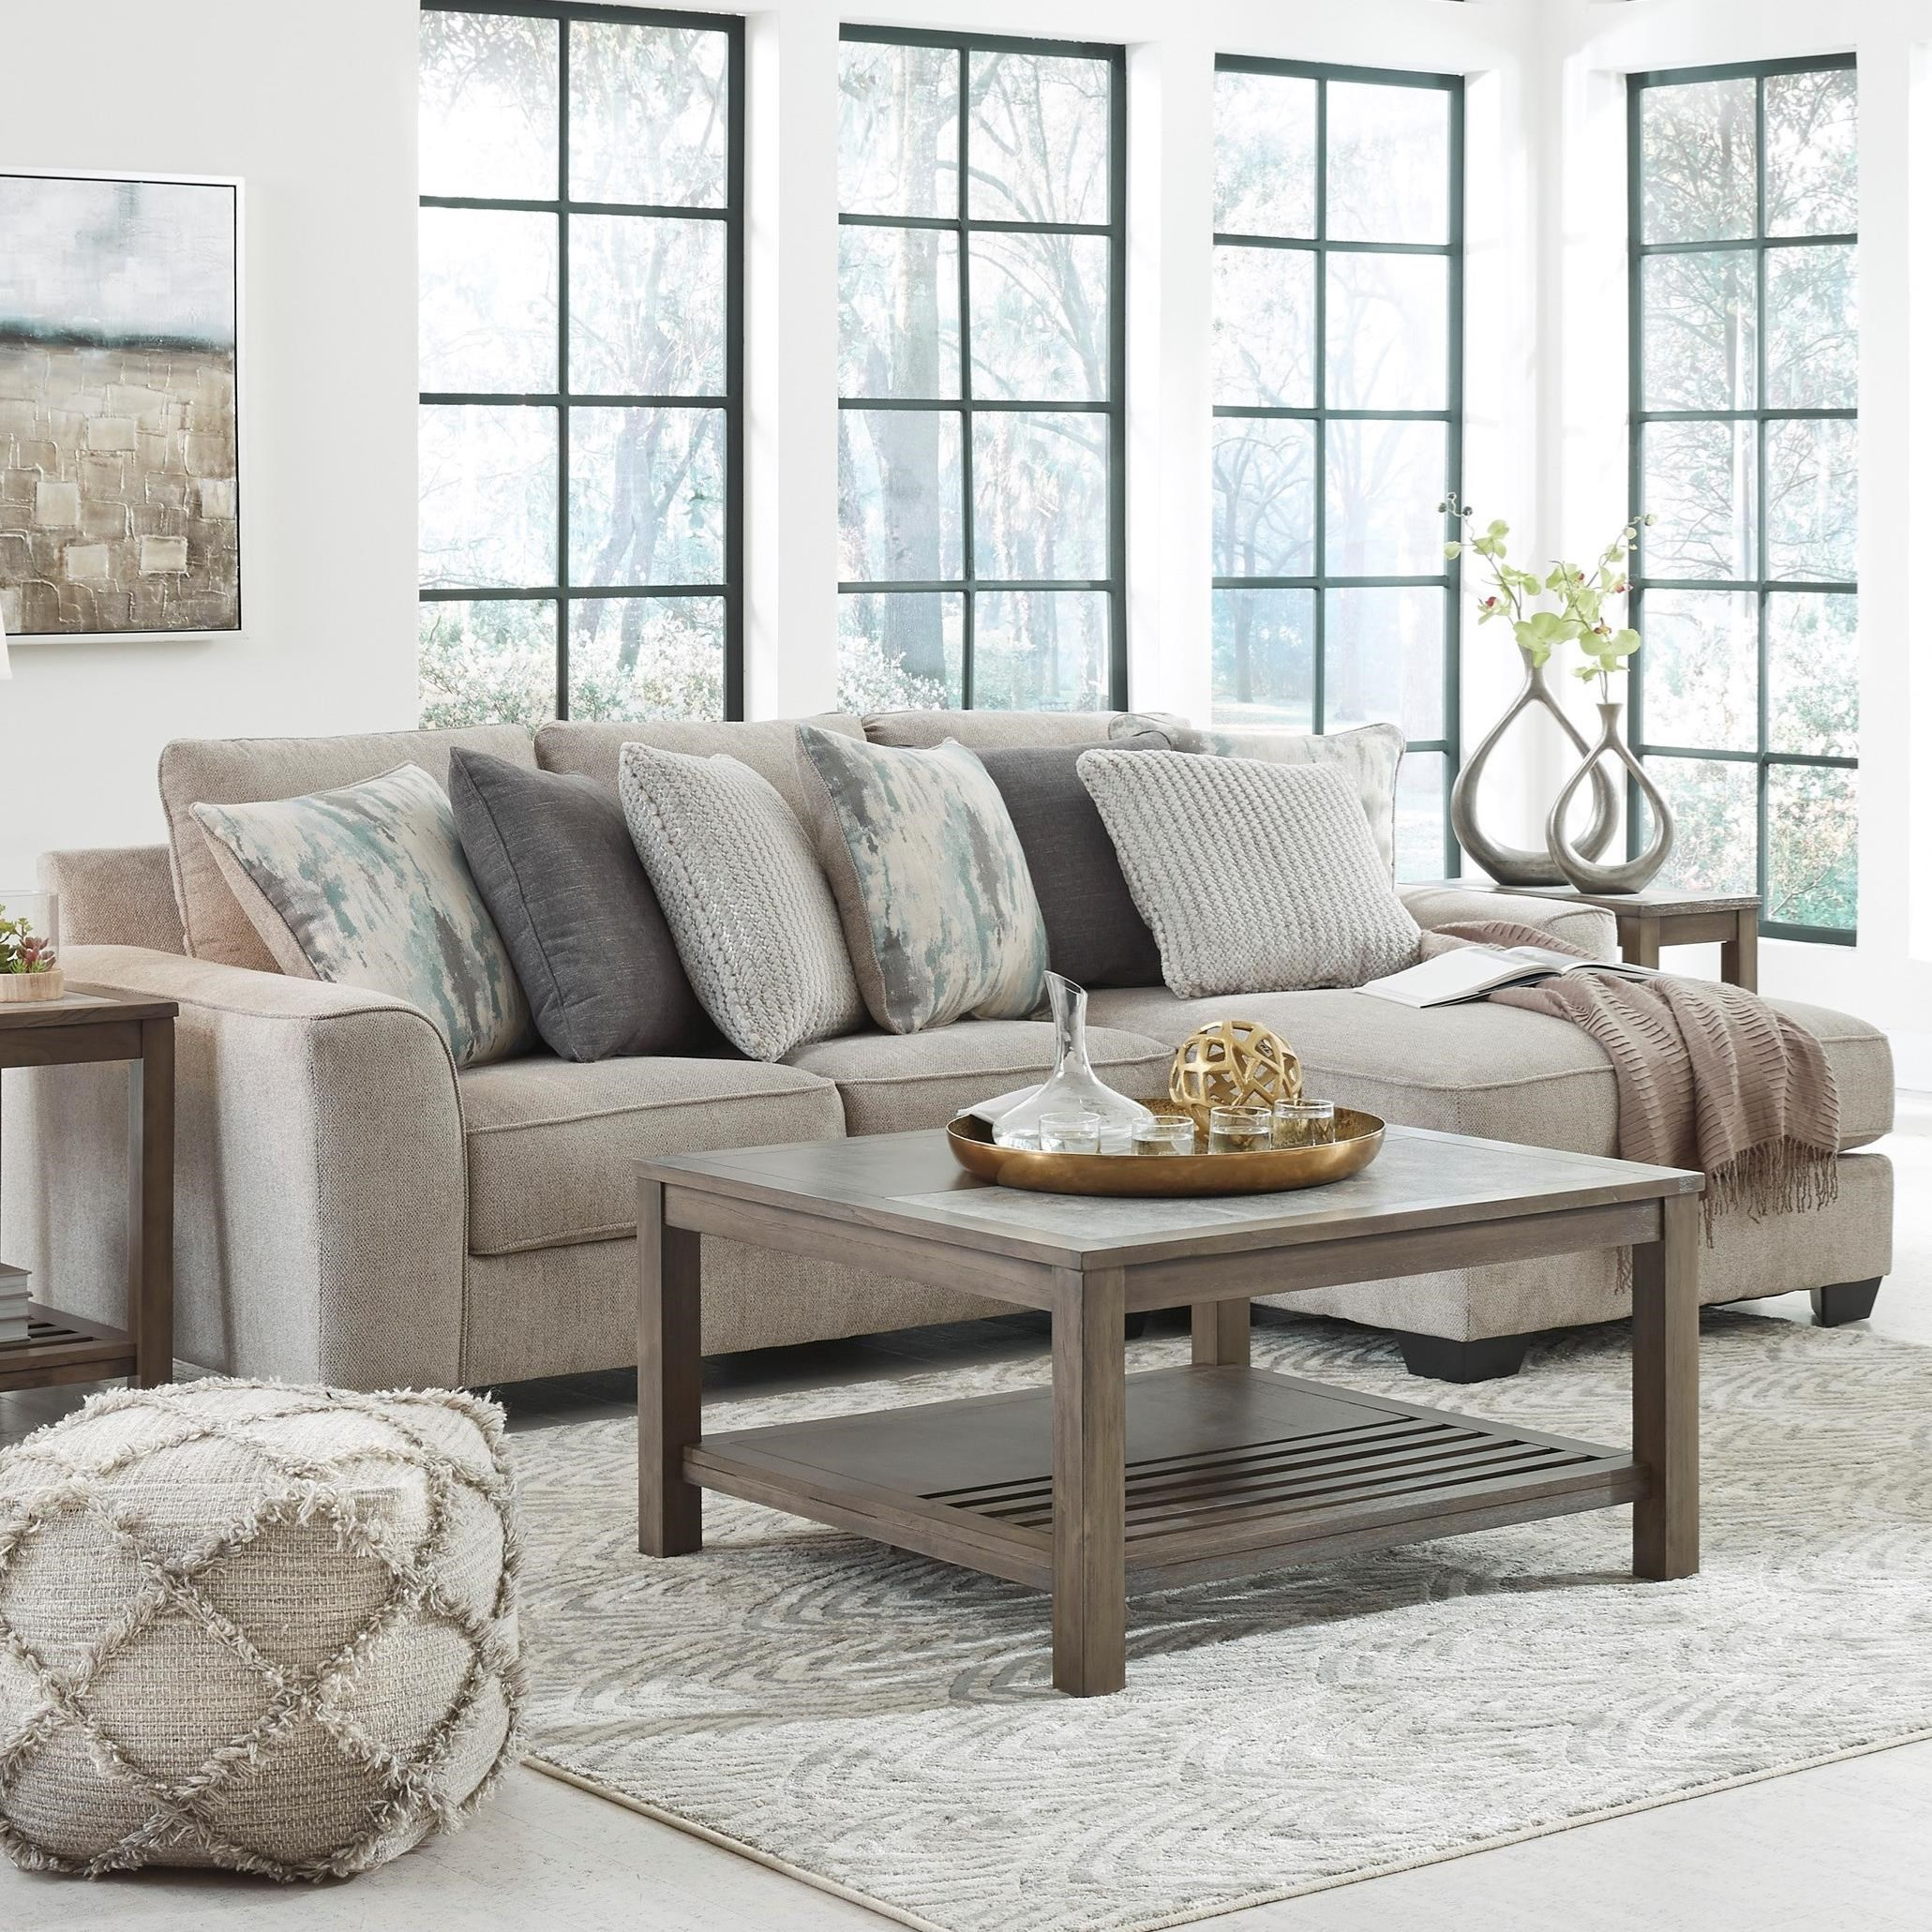 Ardsley 2-Piece Sectional with Right Chaise by Benchcraft at Simply Home by Lindy's